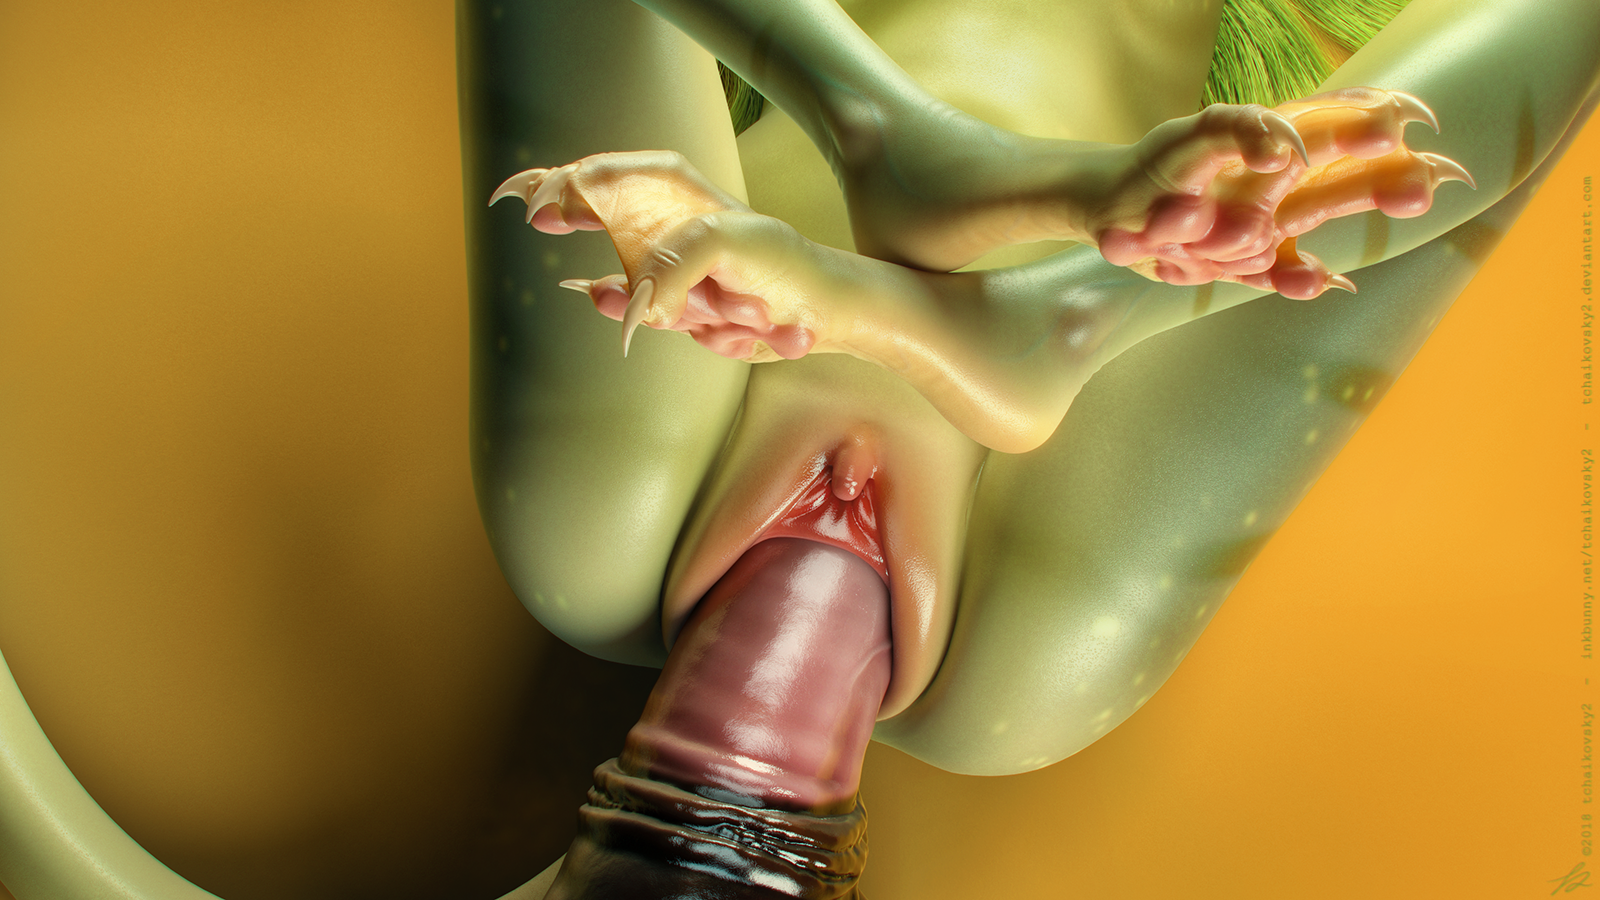 2440007_tchaikovsky2_beyond_silk_02_huge_dildo_